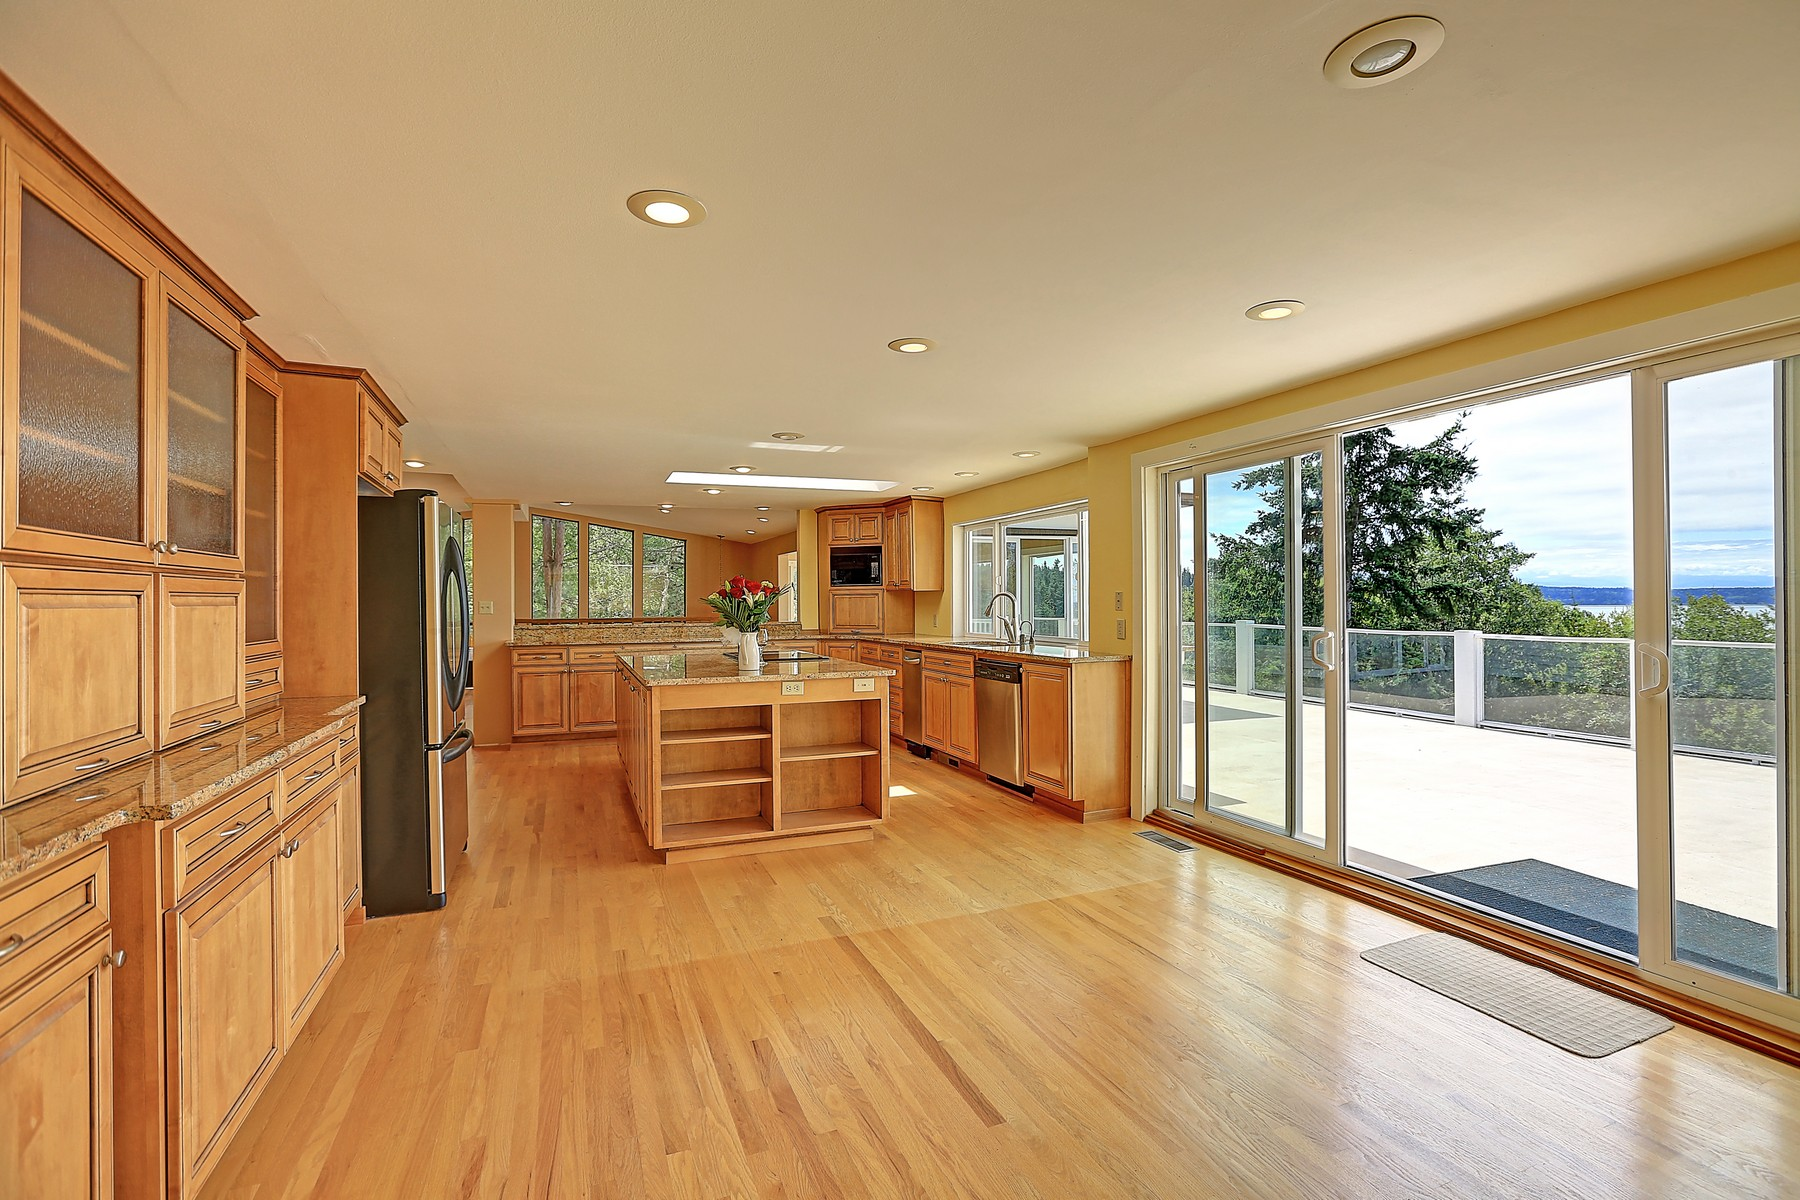 Additional photo for property listing at Madrona View with Acerage 180 Horizon Wy Camano Island, Washington 98282 Estados Unidos